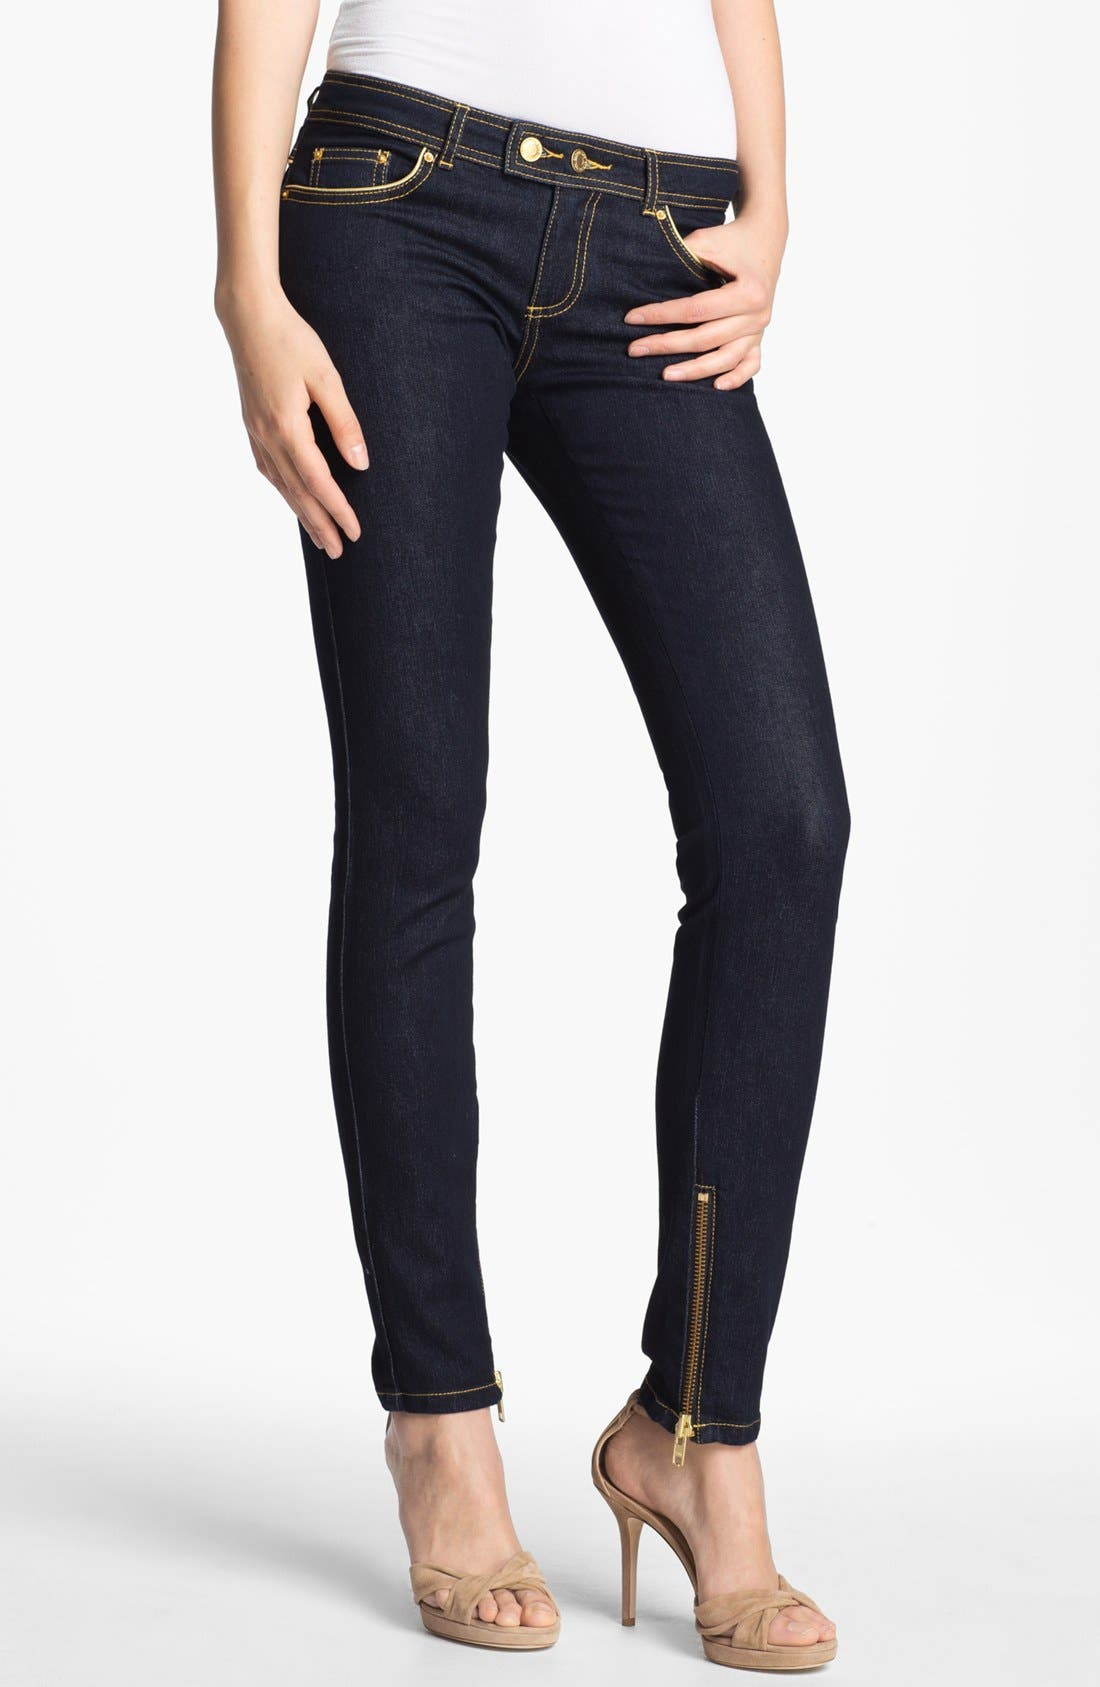 Alternate Image 1 Selected - Rachel Zoe Leather Piped Skinny Stretch Jeans